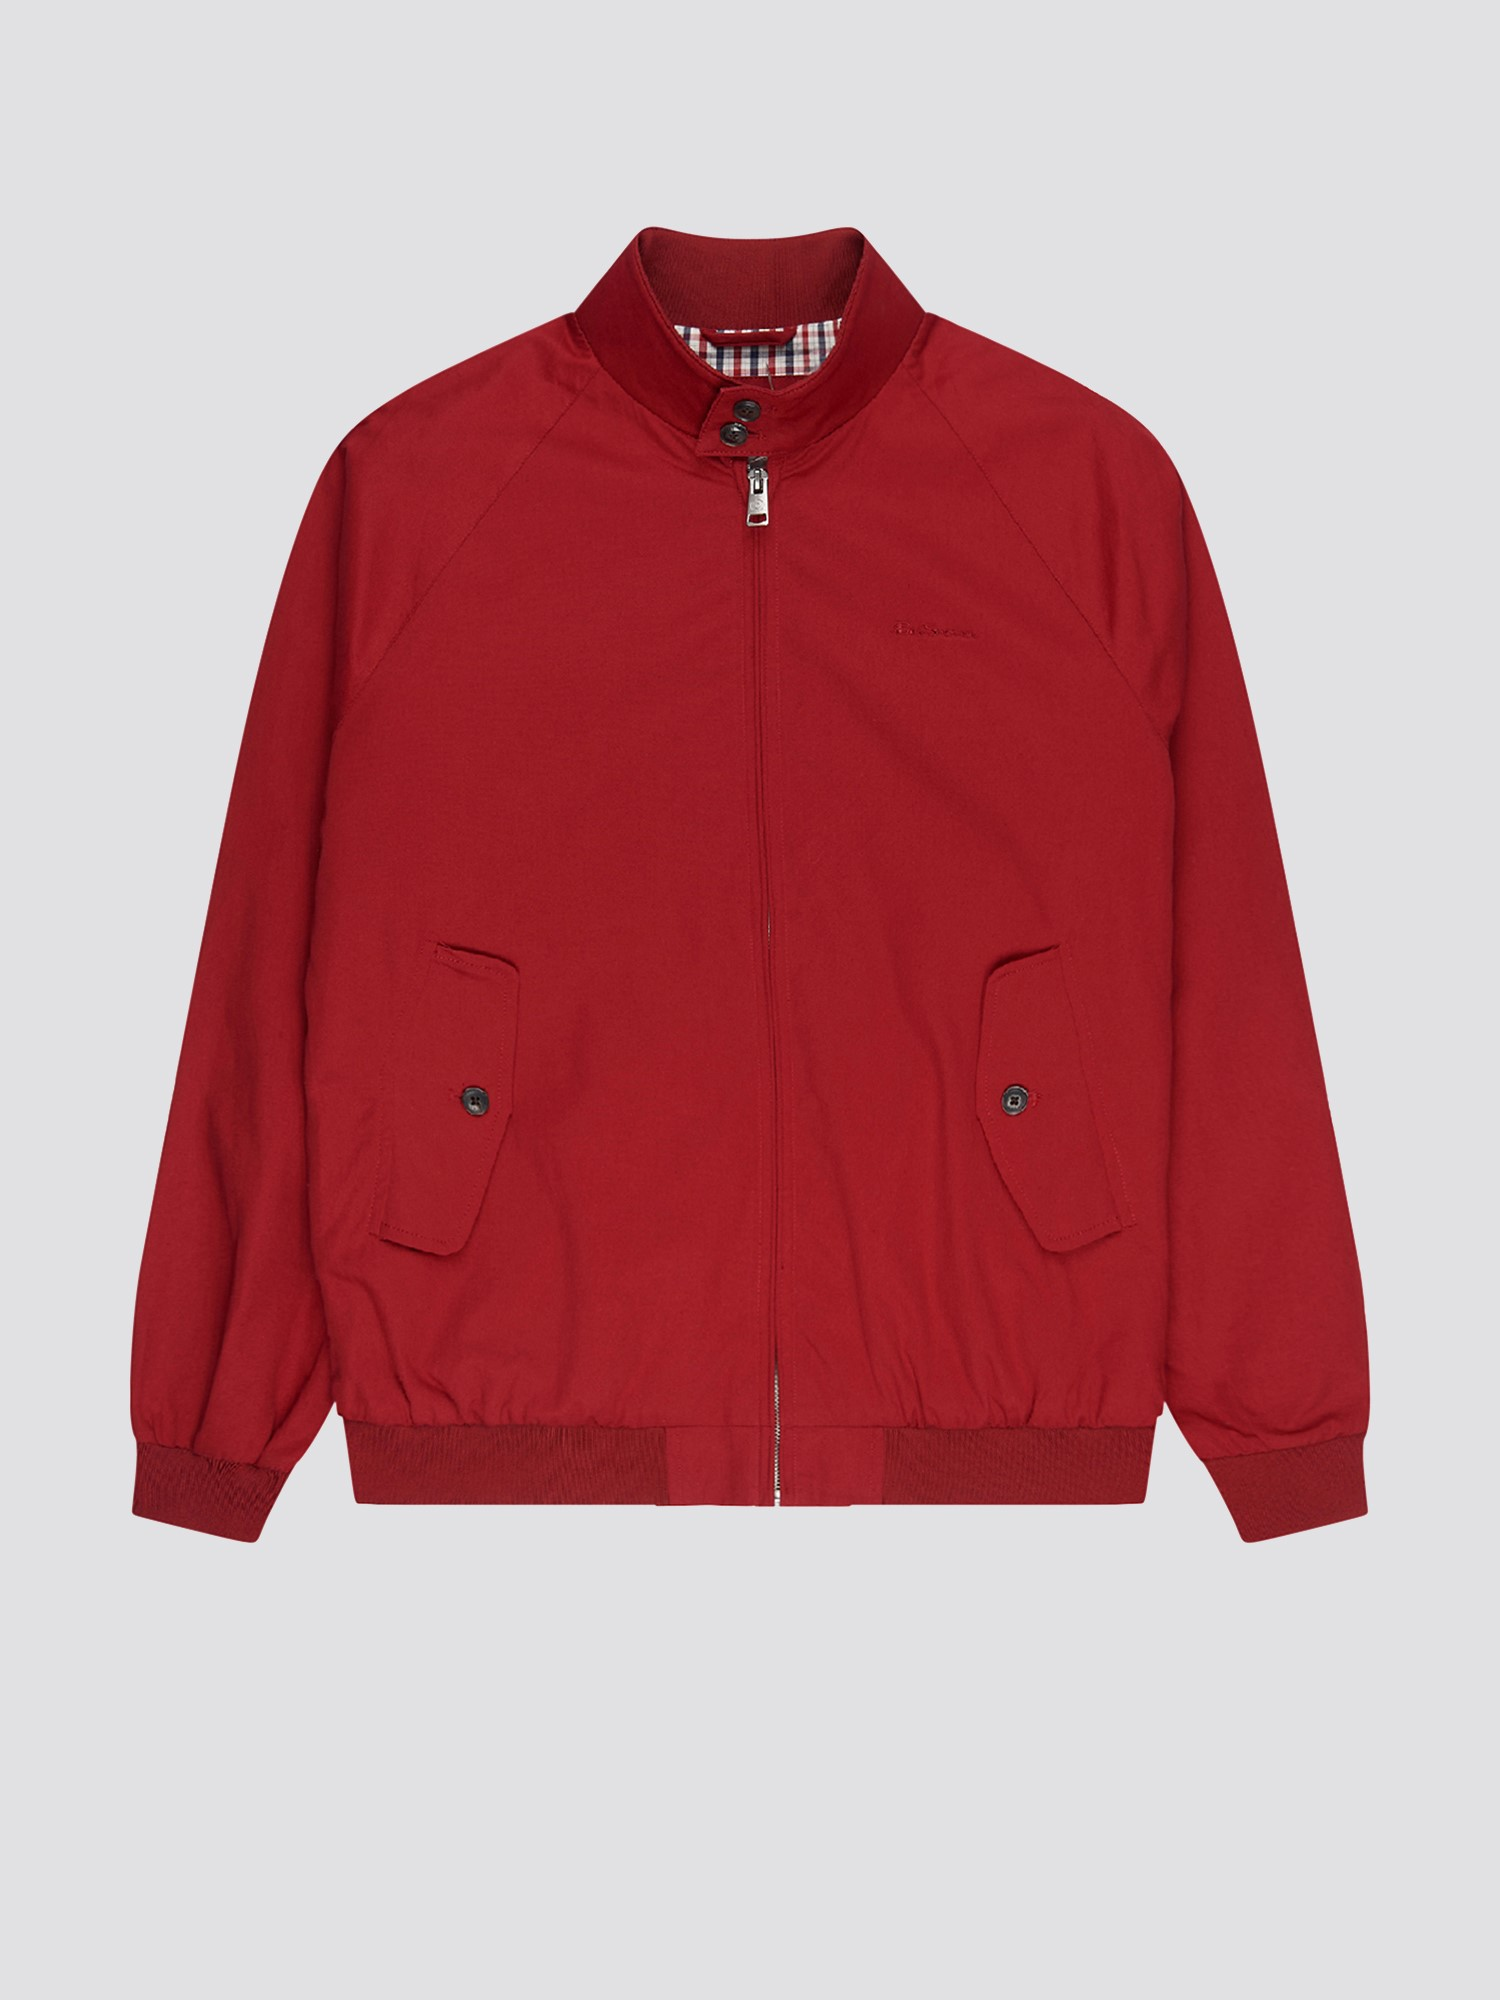 Ben Sherman -Harrington Jacket - Red